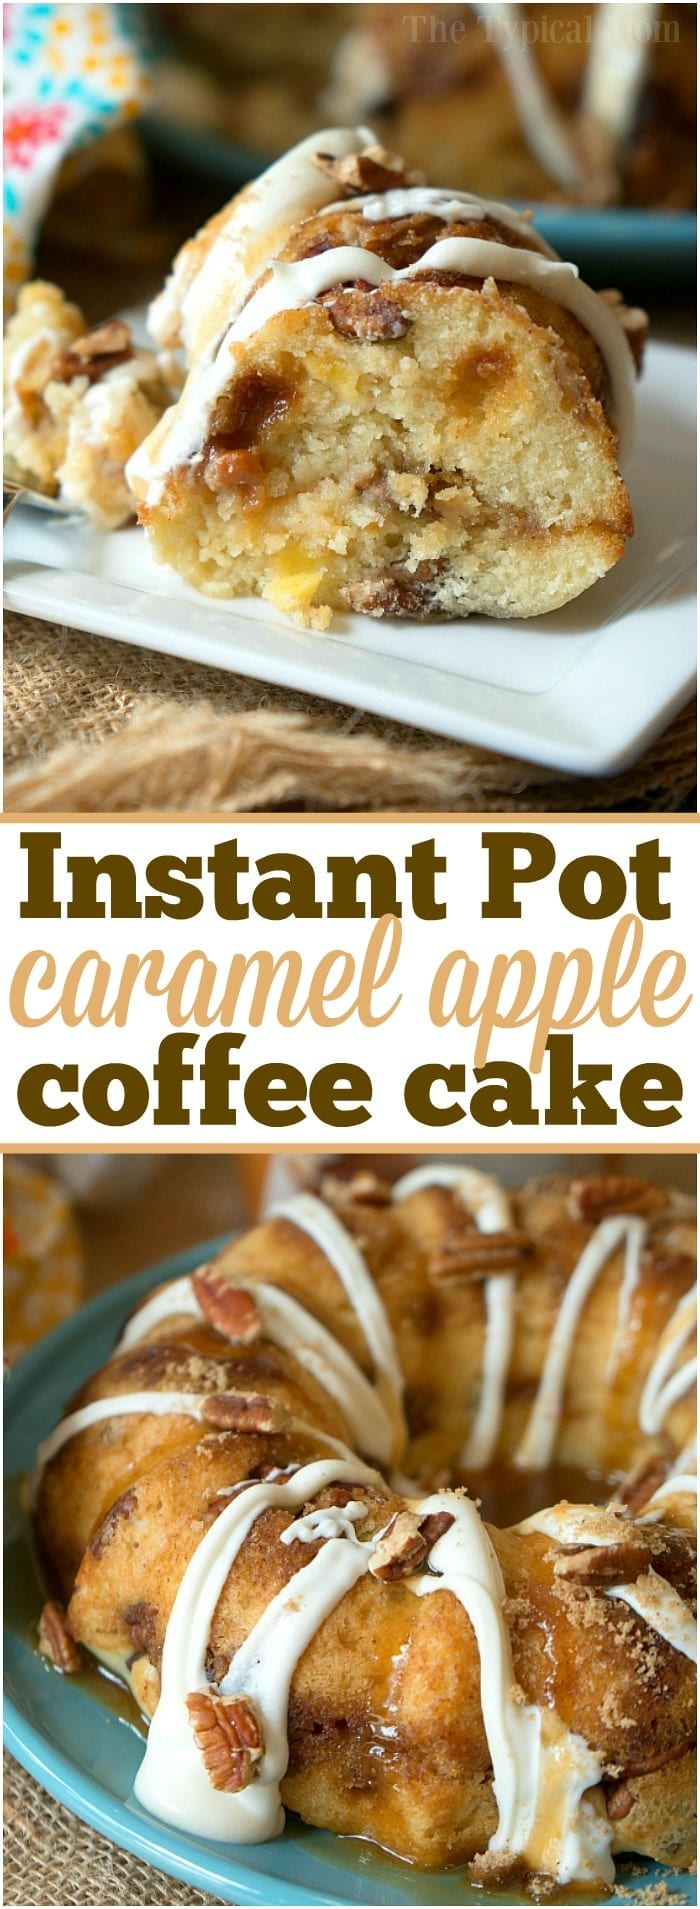 The most amazing caramel apple pecan Instant Pot coffee cake! Bake it in the oven or in your pressure cooker with some coffee for the perfect breakfast.